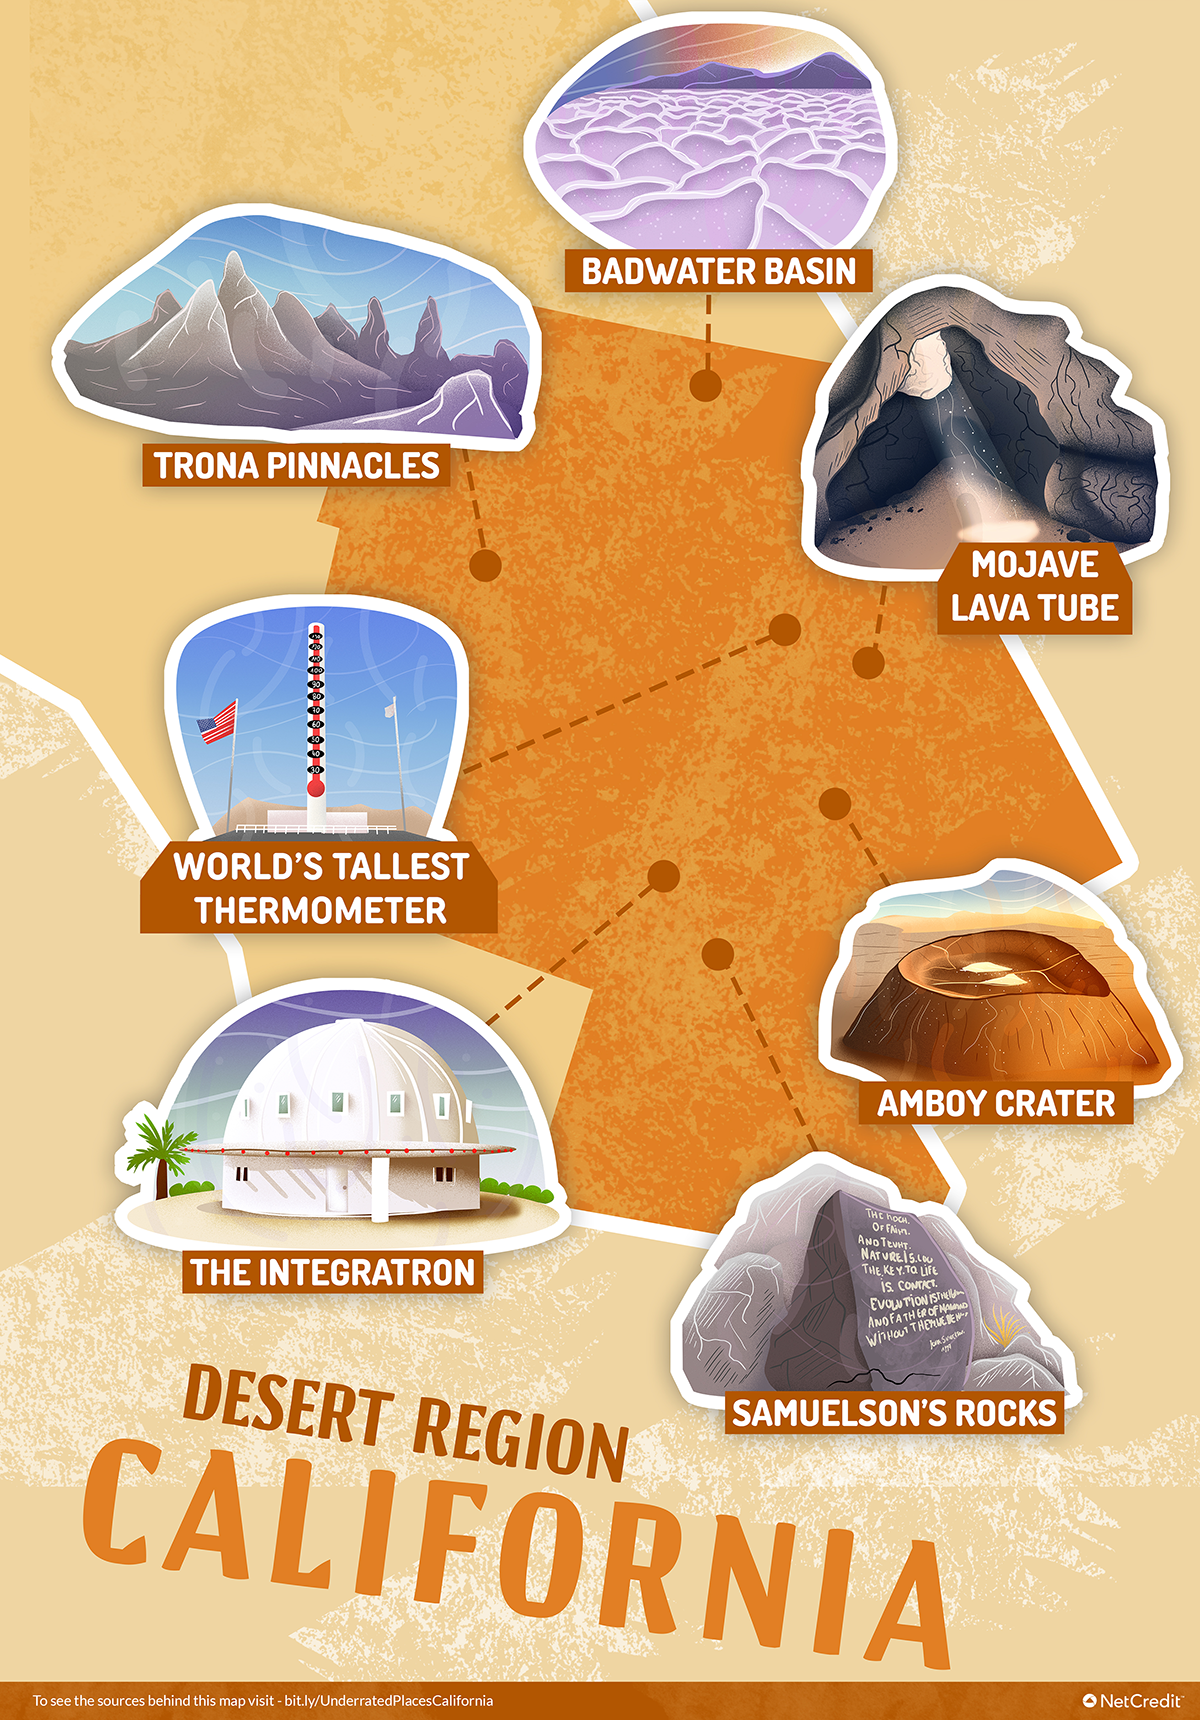 Outline of California's desert region pointing out specific places that are worth a visit